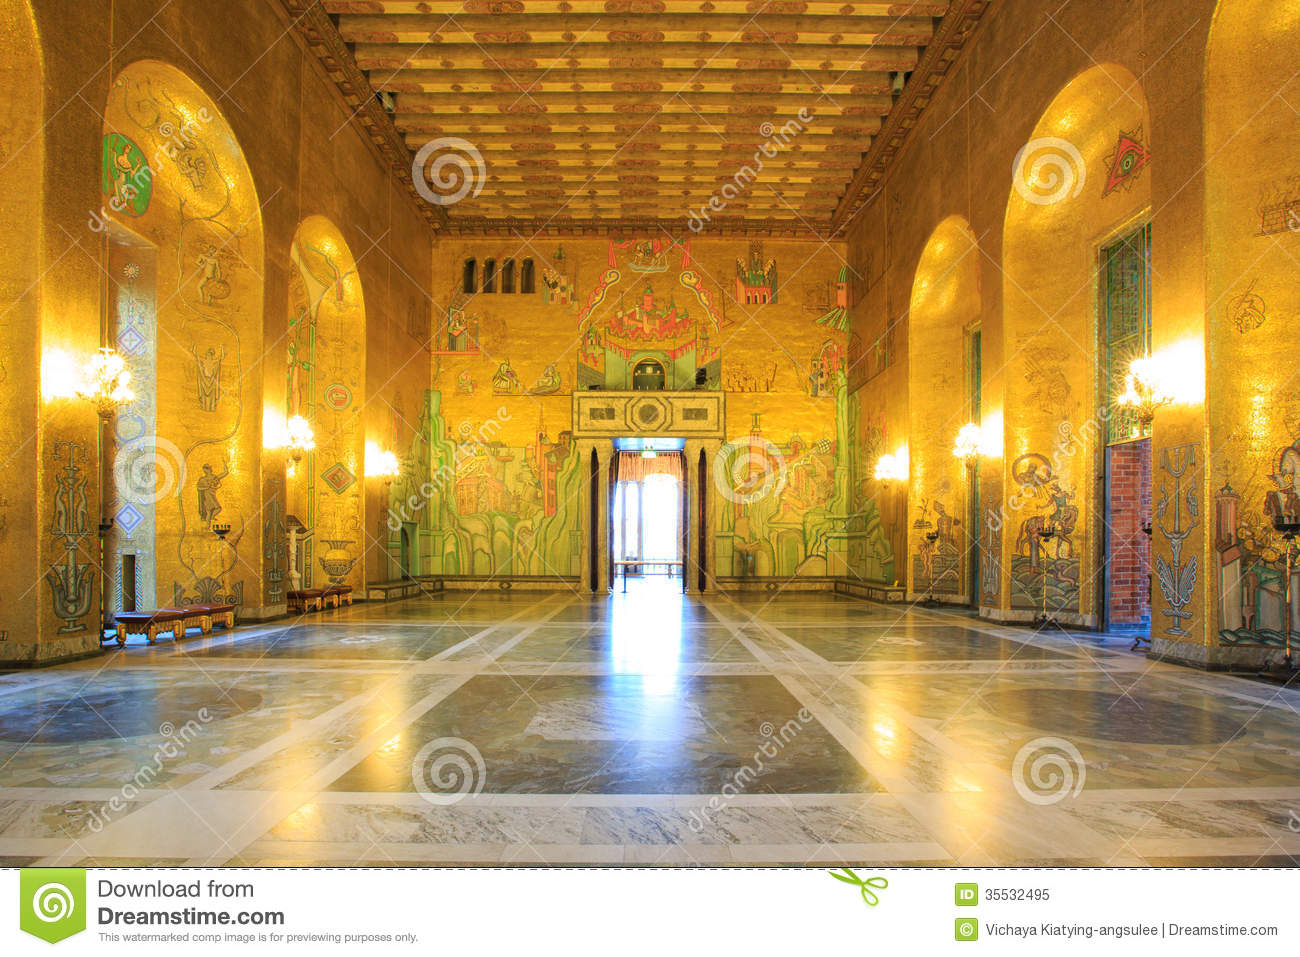 Stockholm city hall ballroom stock image image 35532495 for Image city interiors